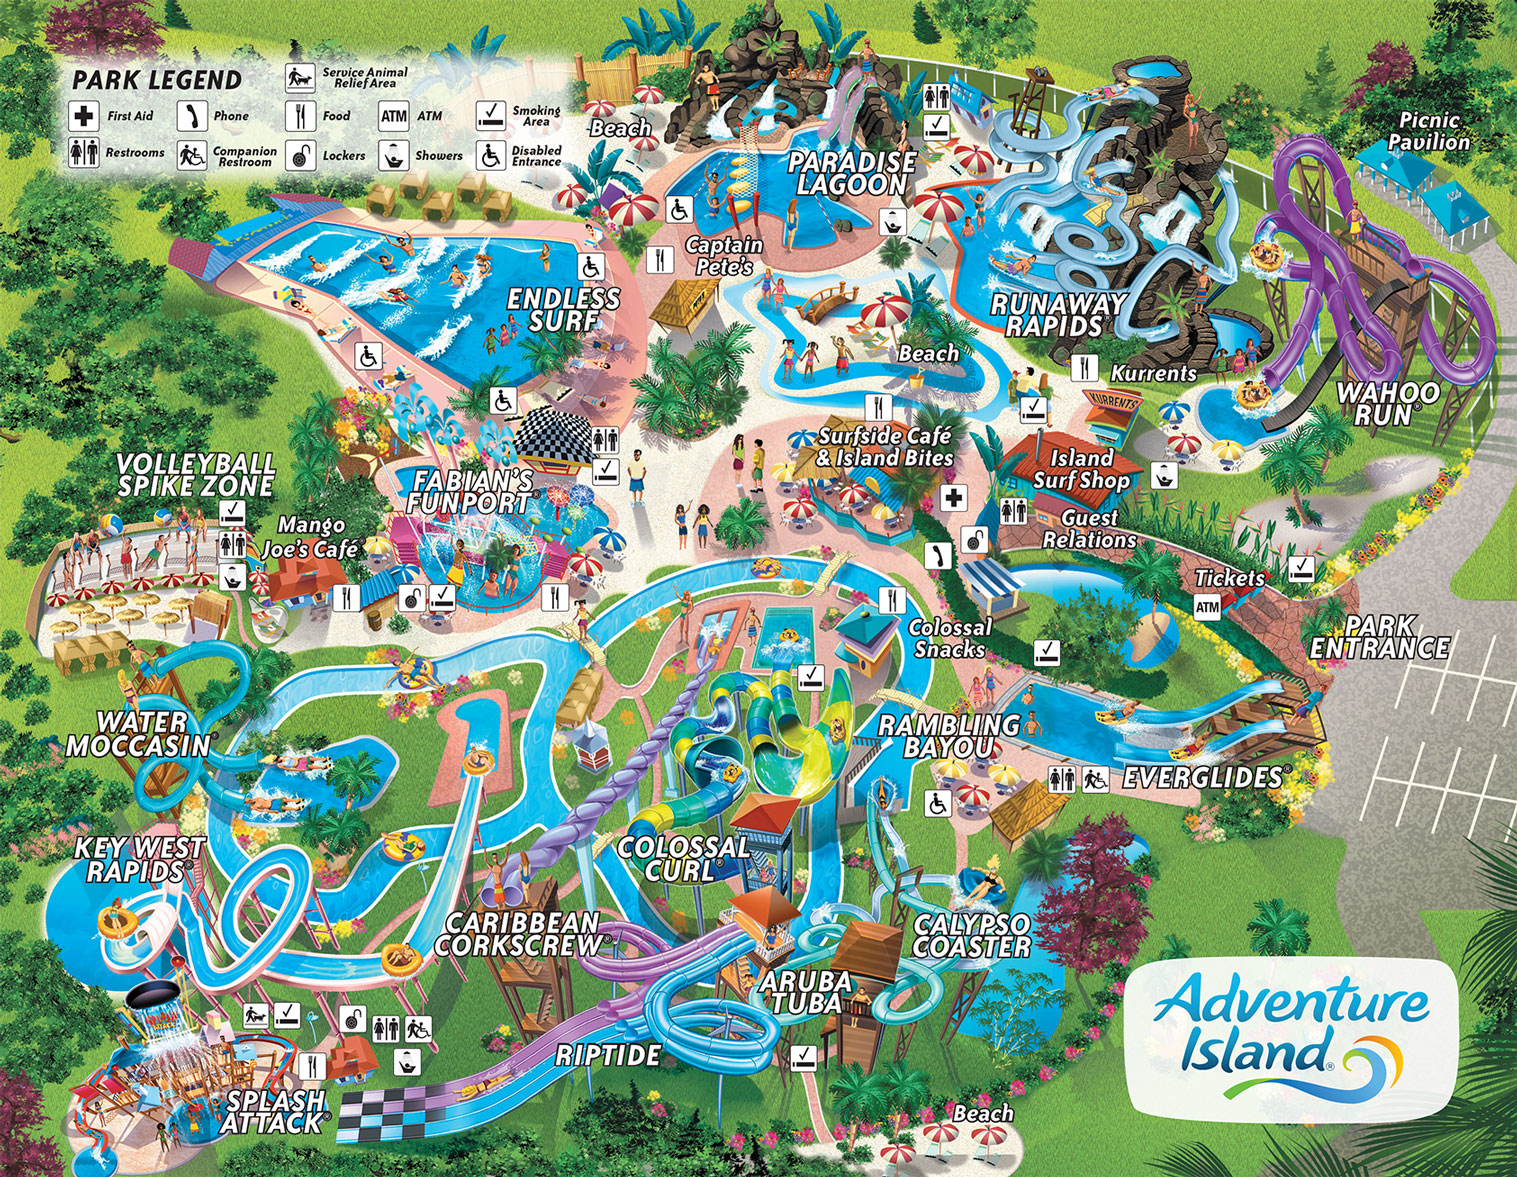 Pleasing Map  Adventure Island Tampa Waterpark With Likable Download Park Map With Extraordinary Hard Rock Cafe Covent Garden Also Grand Garden Arena In Addition Garden Centres Fife And Garden Design And Landscaping As Well As Shady Garden Plants Additionally Wenvoe Garden Centre From Adventureislandcom With   Likable Map  Adventure Island Tampa Waterpark With Extraordinary Download Park Map And Pleasing Hard Rock Cafe Covent Garden Also Grand Garden Arena In Addition Garden Centres Fife From Adventureislandcom